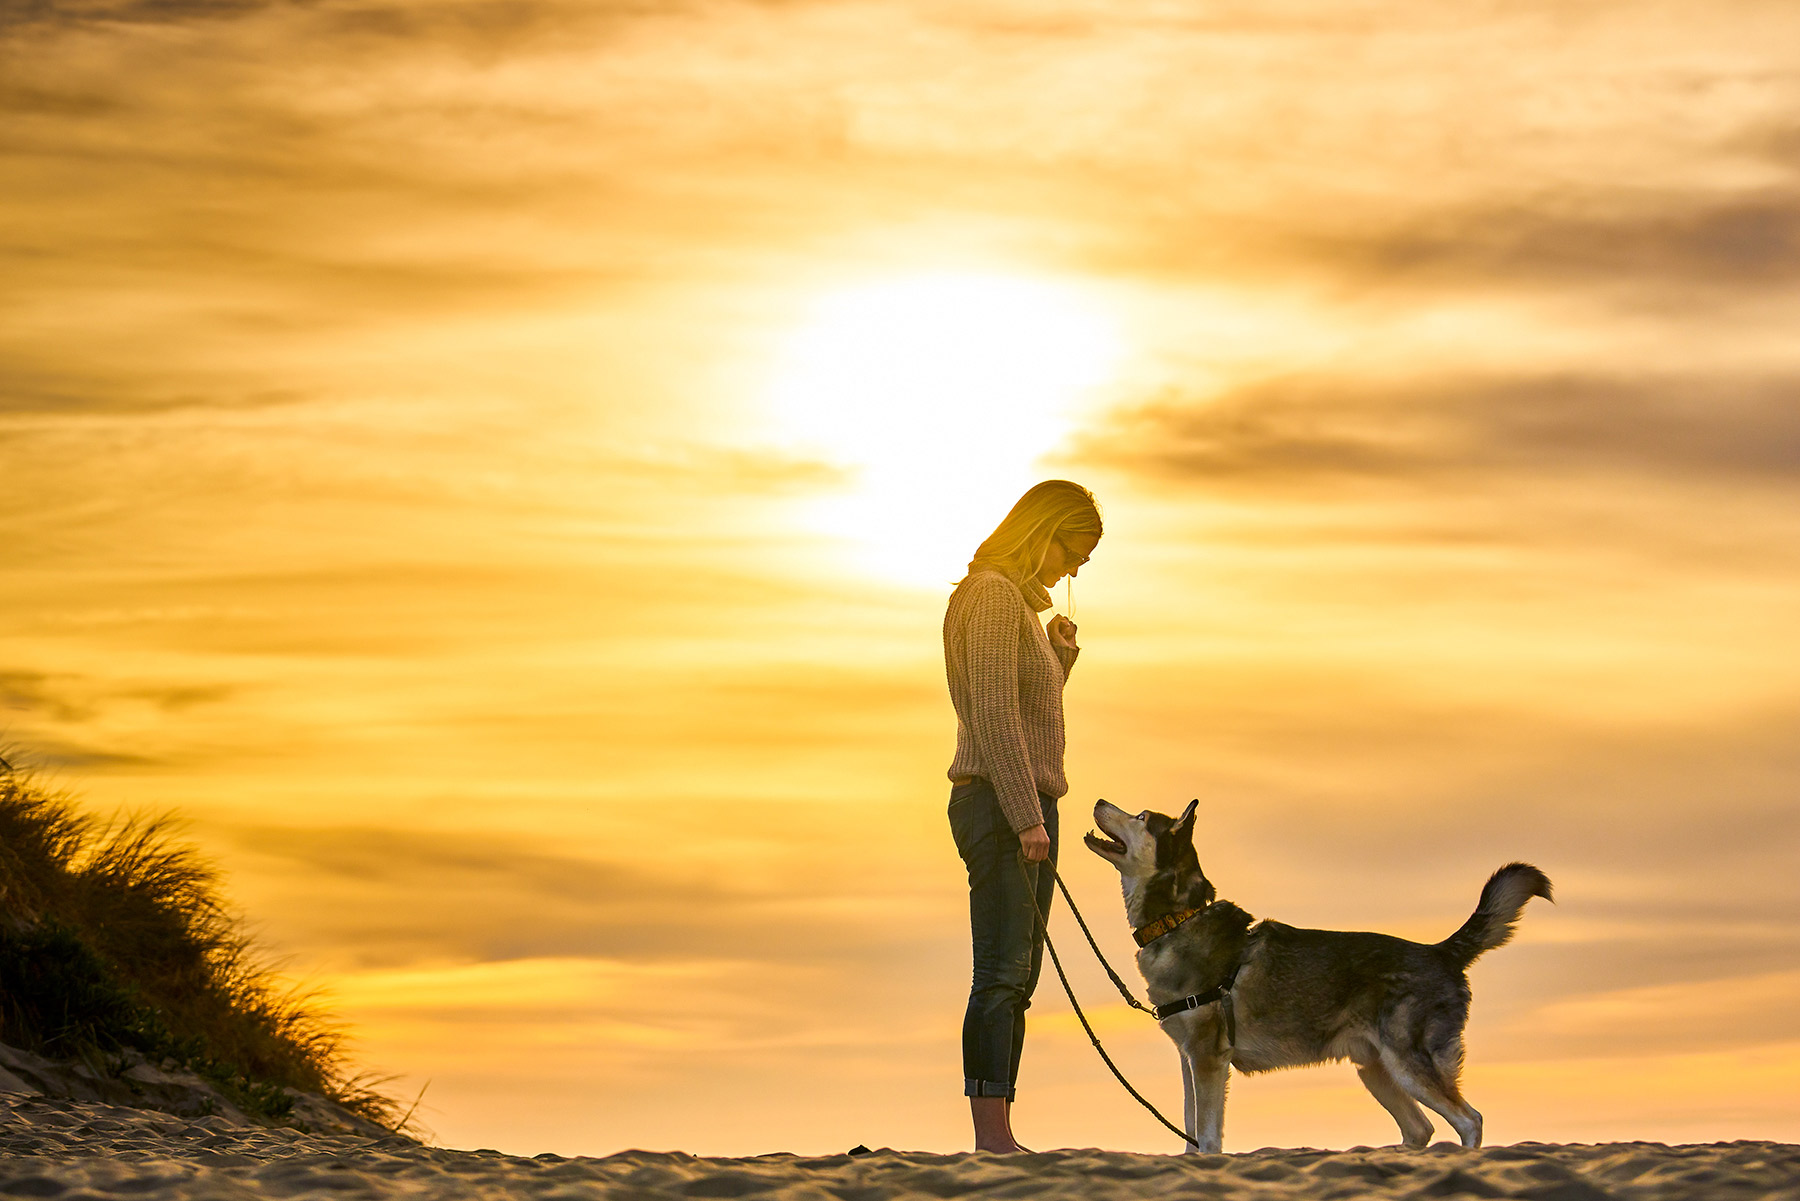 A-woman-bonding-with-her-Siberian-Husky-on-the-beach-against-the-setting-sun